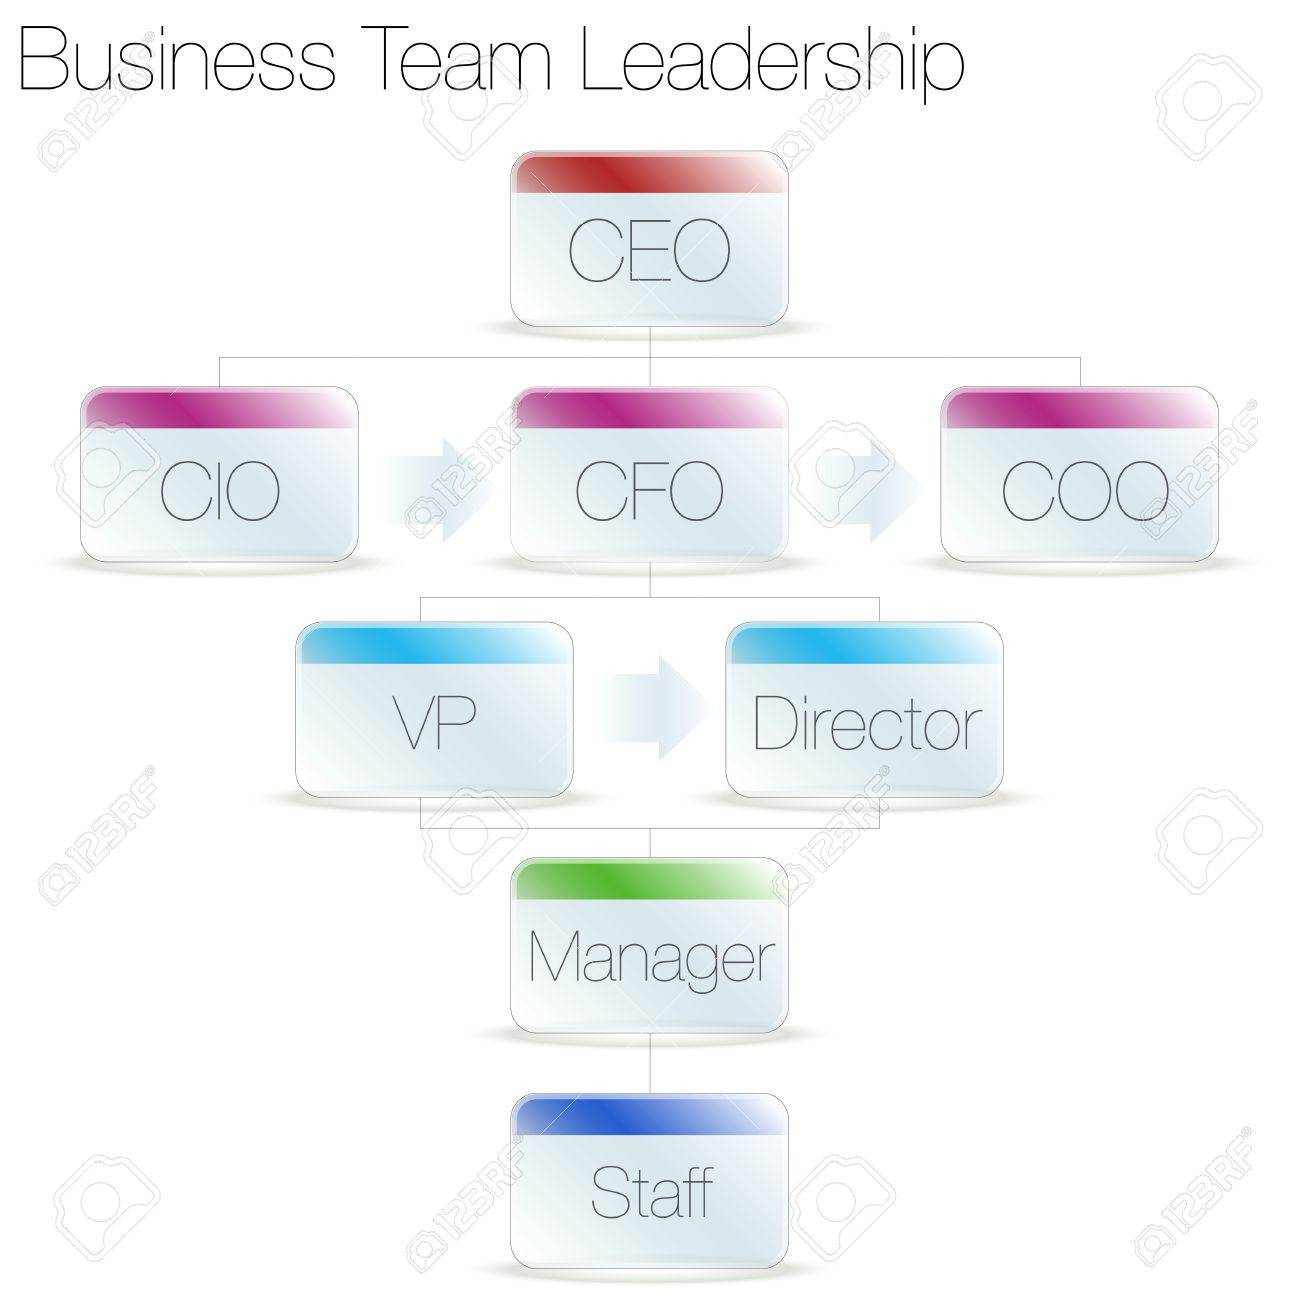 An image of a business team leadership chart. Stock Vector - 15561290